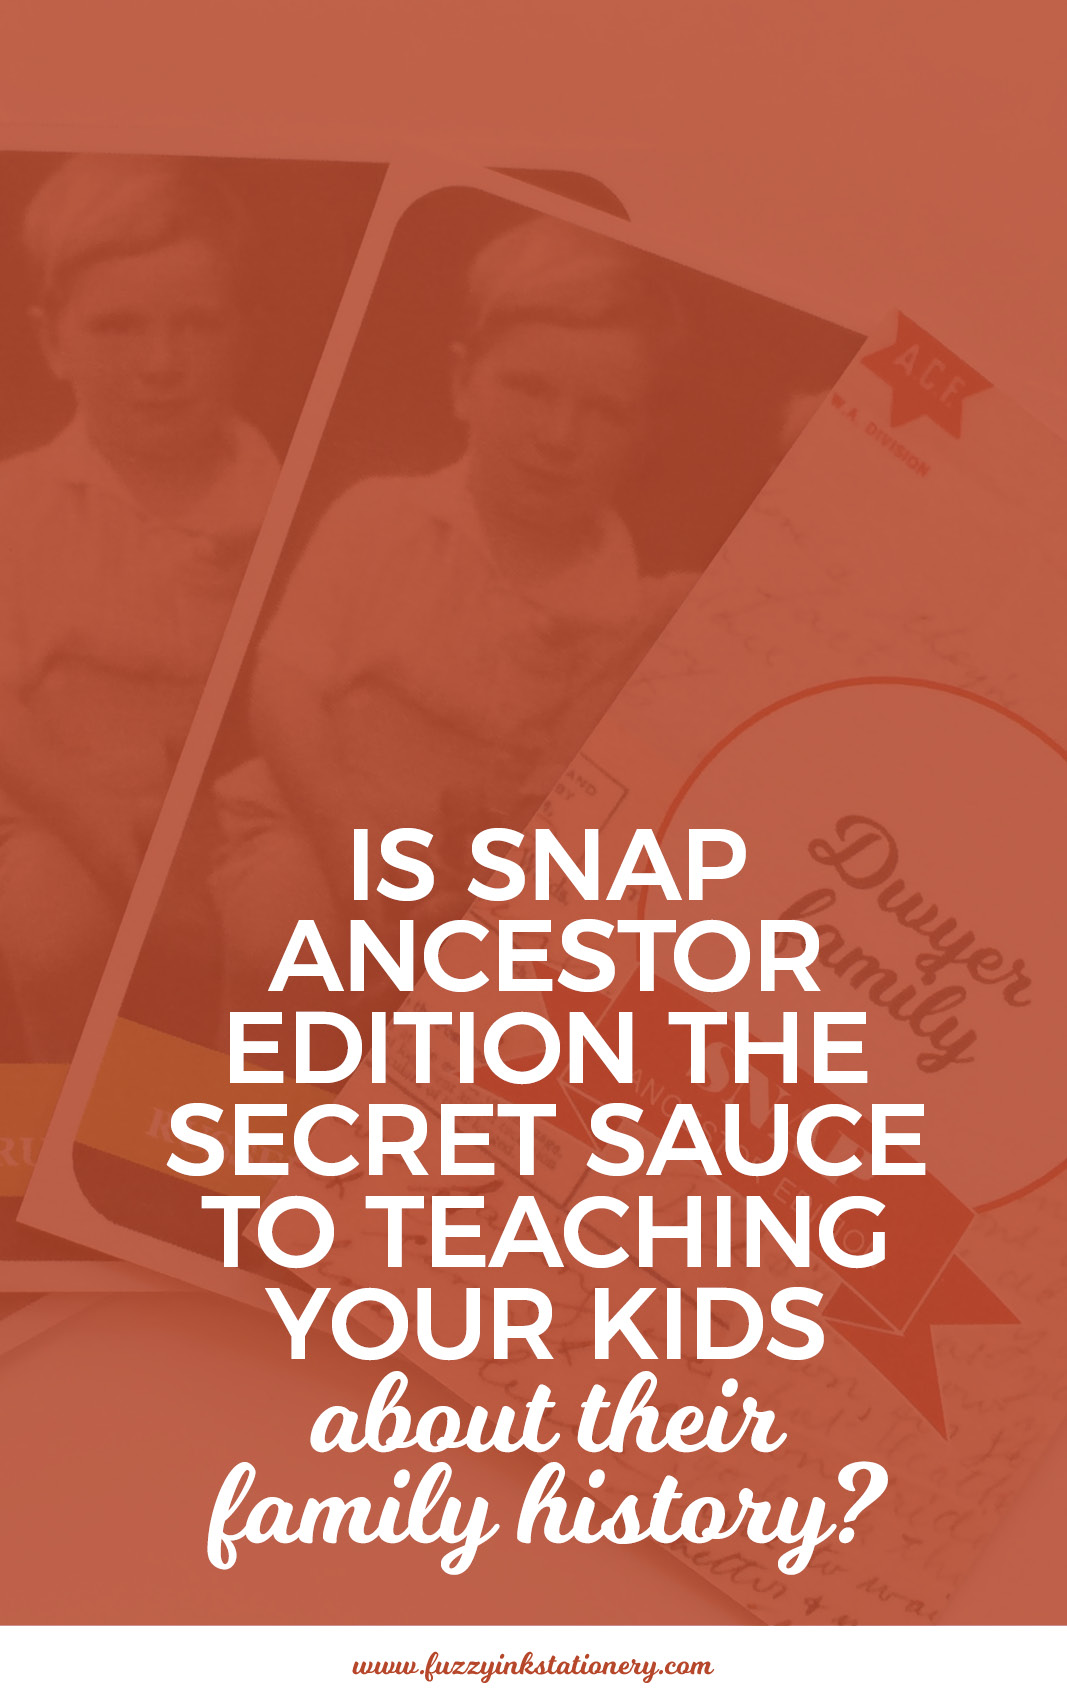 Is Fuzzy Ink Stationery's SNAP Ancestor Edition the secret sauce to teaching your kids about their family history?